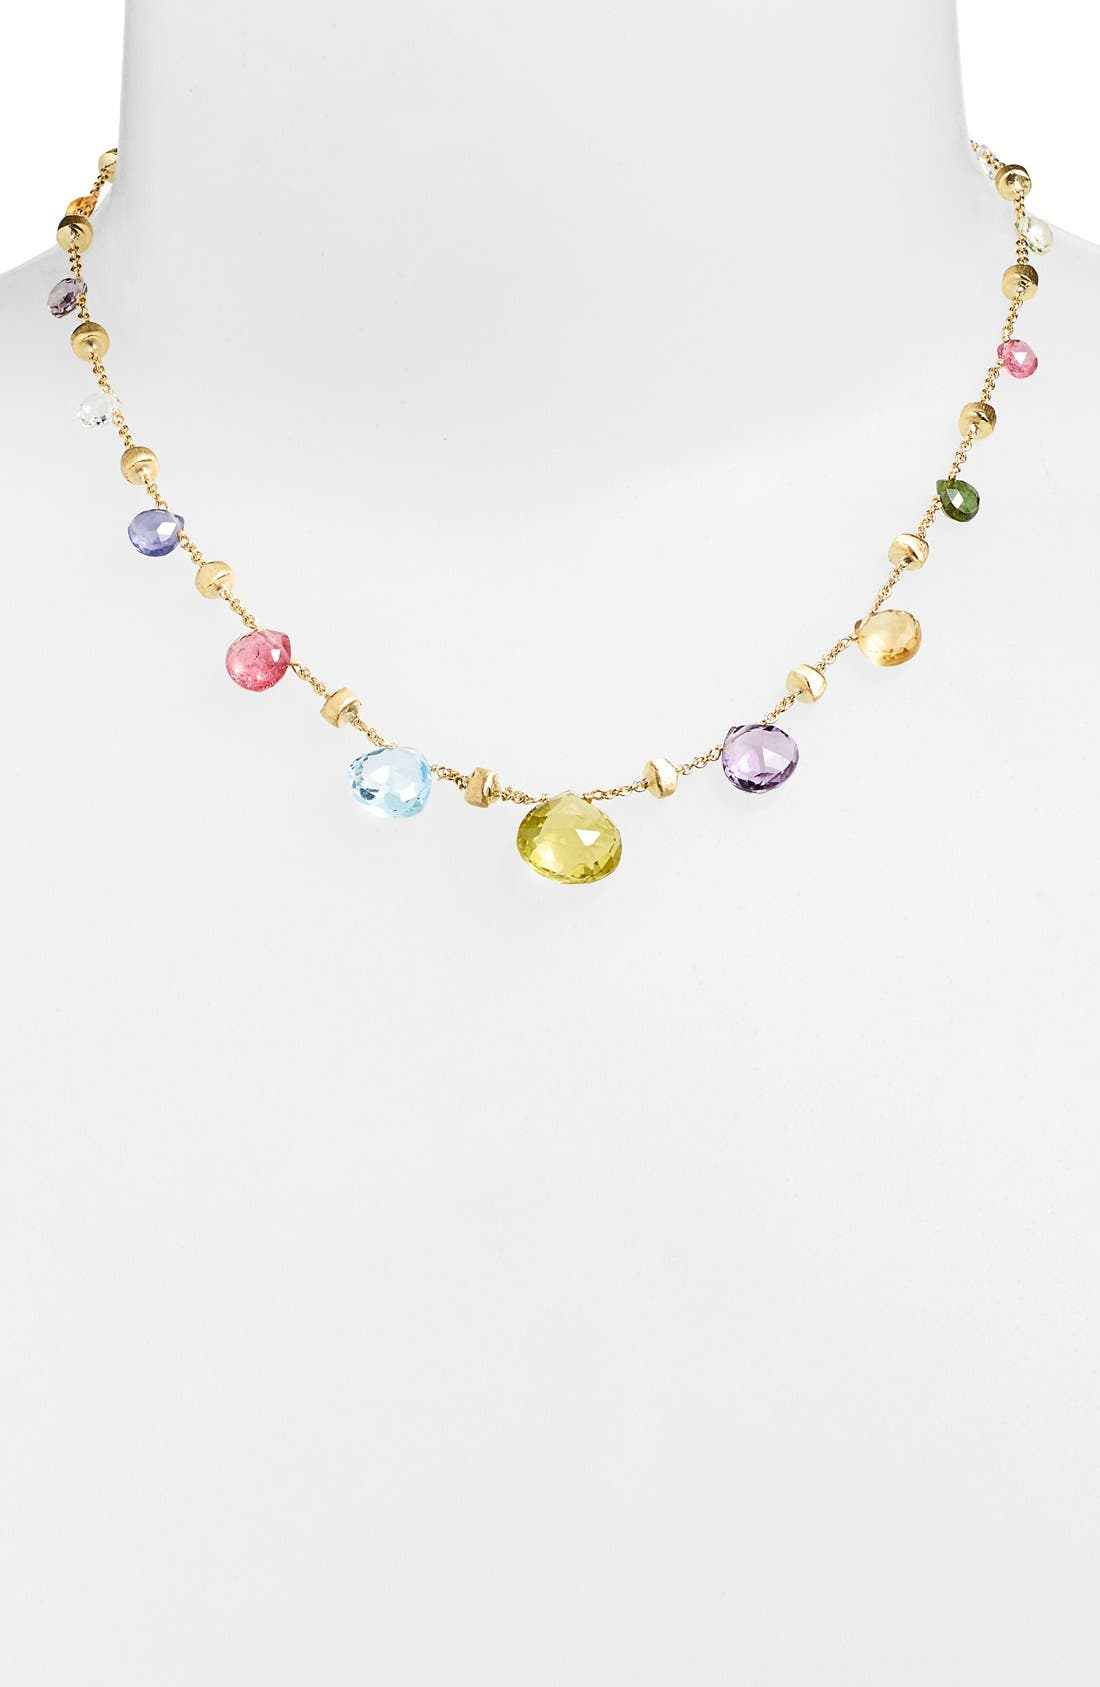 'Paradise' Collar Necklace,                             Main thumbnail 1, color,                             Multi/ Yellow Gold